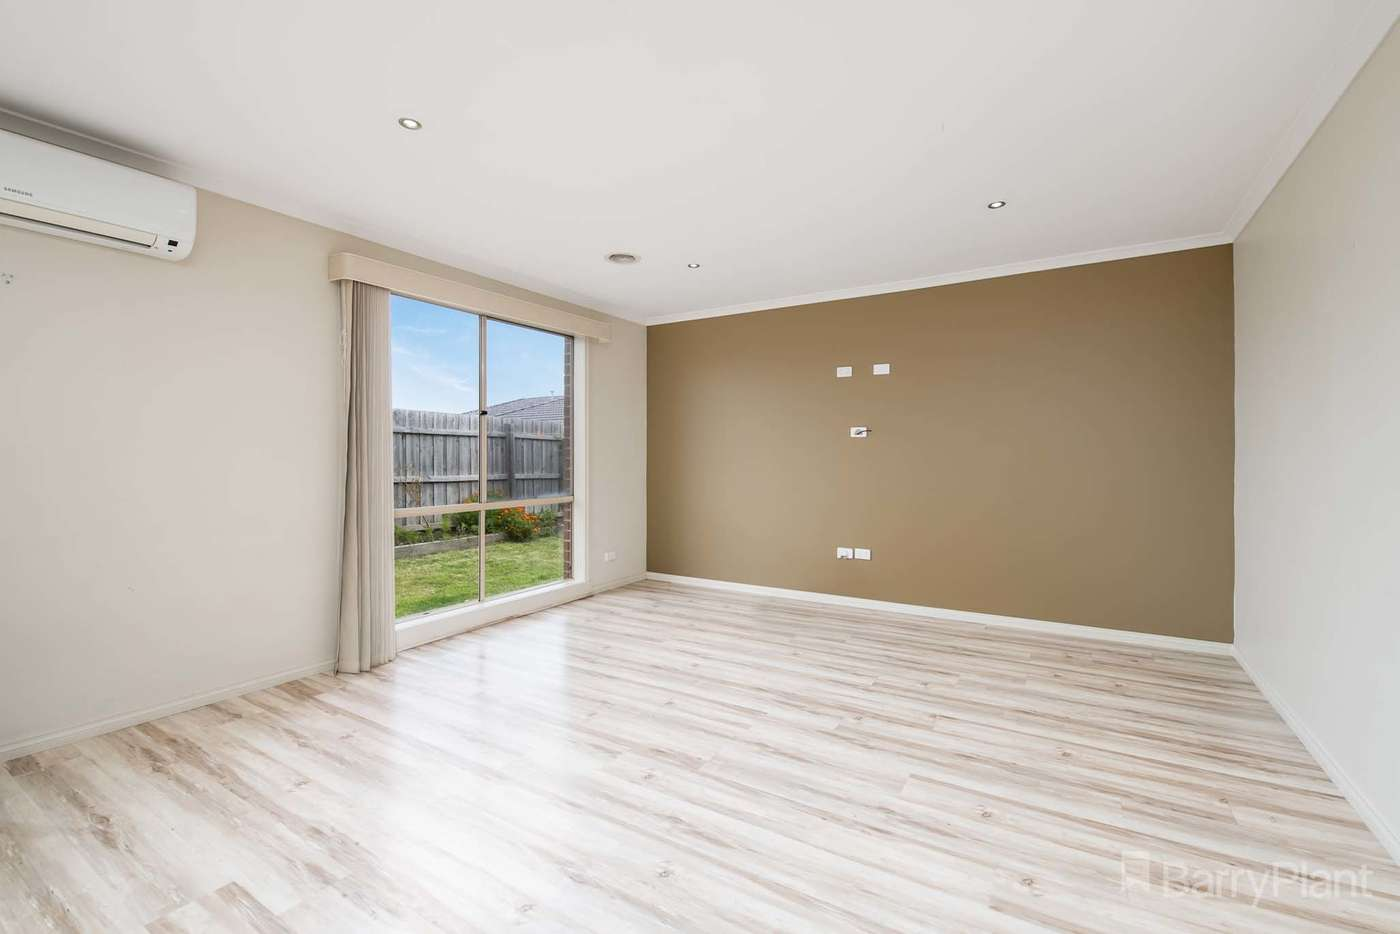 Sixth view of Homely house listing, 13 Currawong Crescent, Pakenham VIC 3810